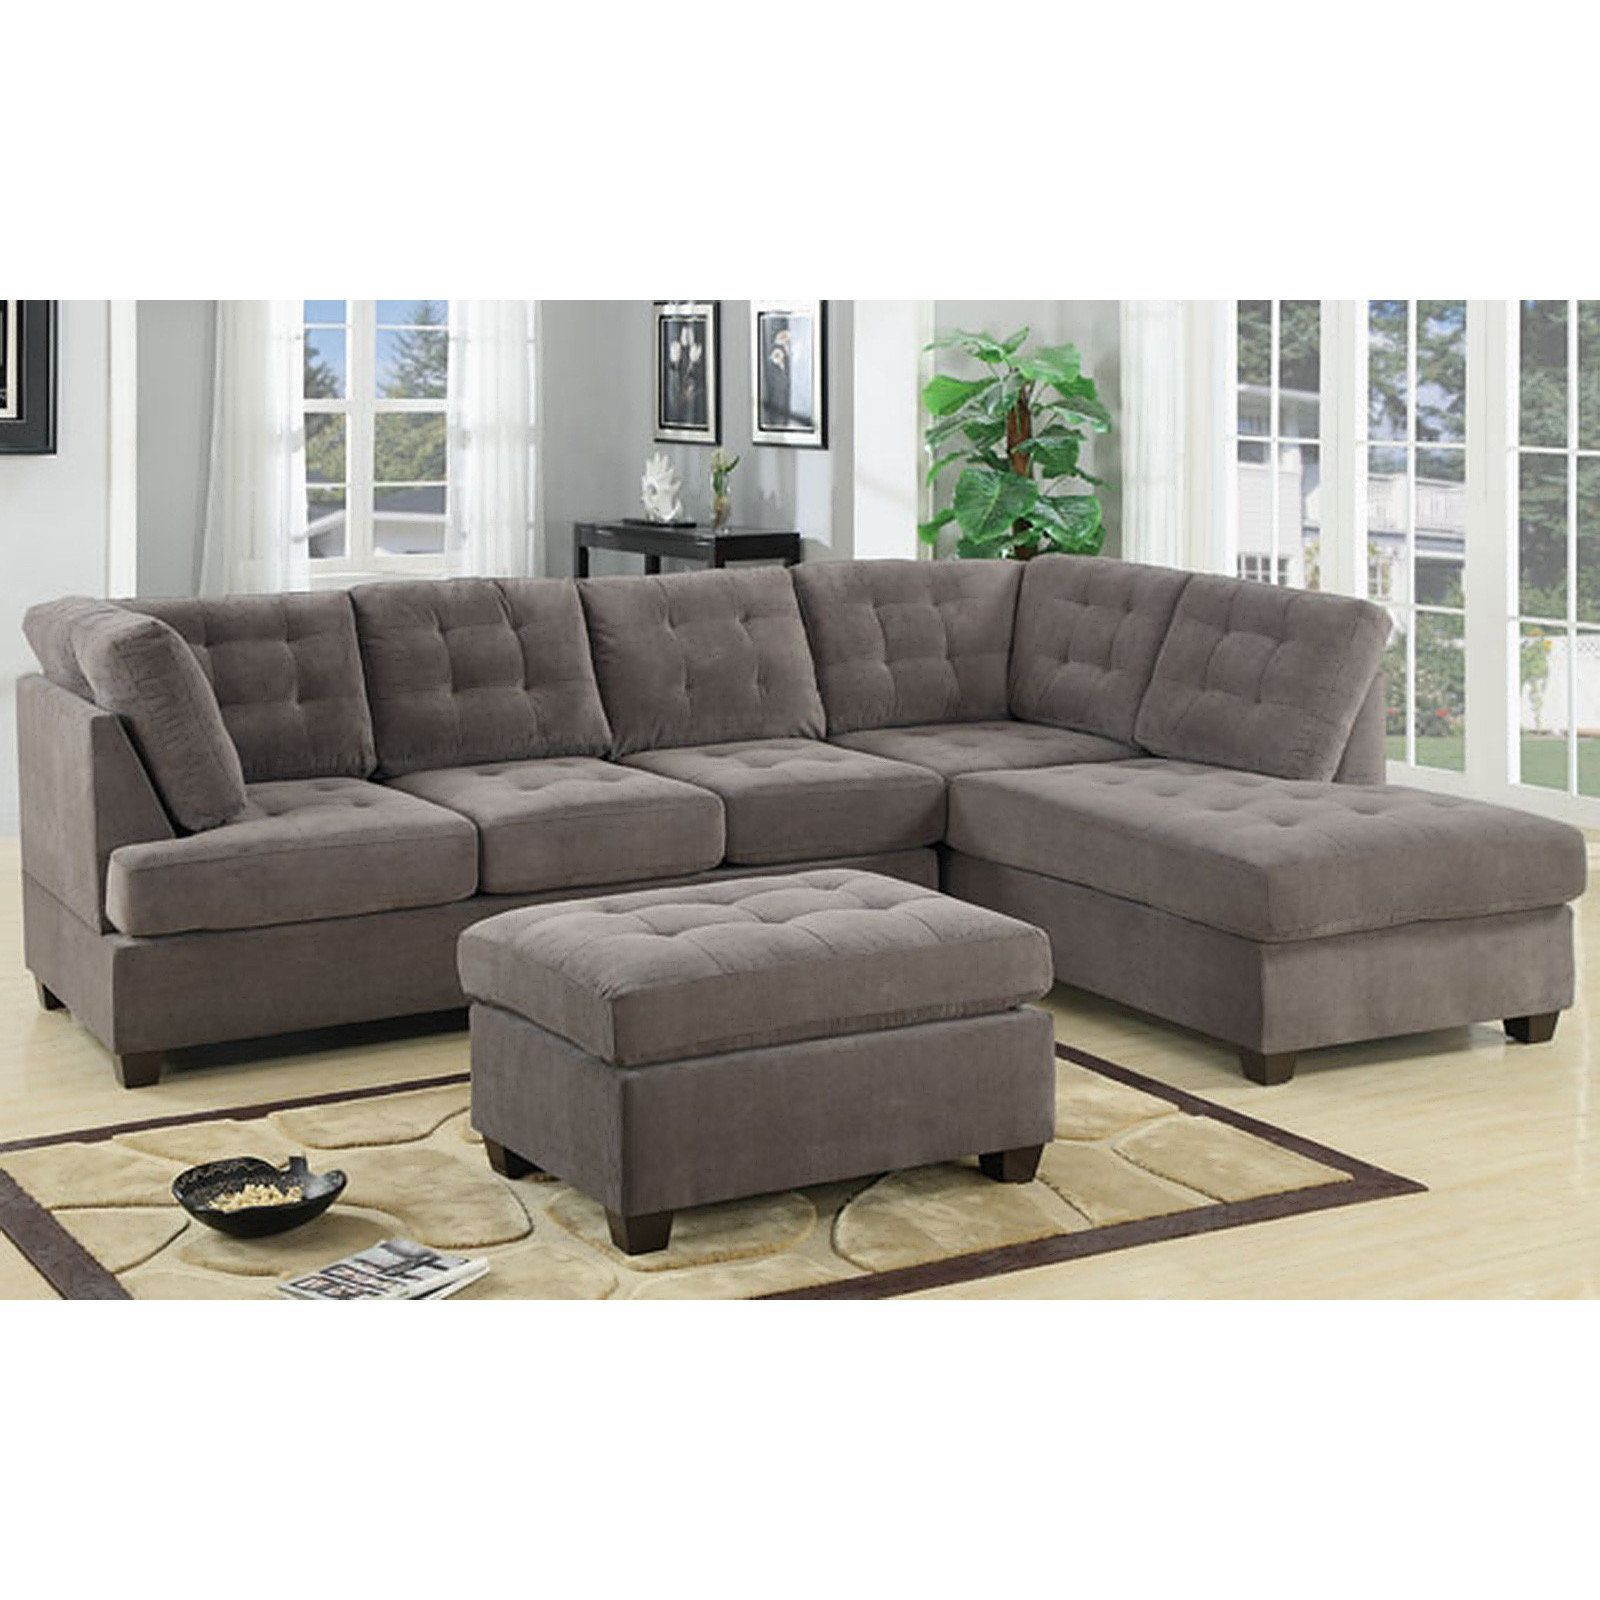 Madison 3 Piece Modern Tufted Grey Microfiber Sectional Sofa